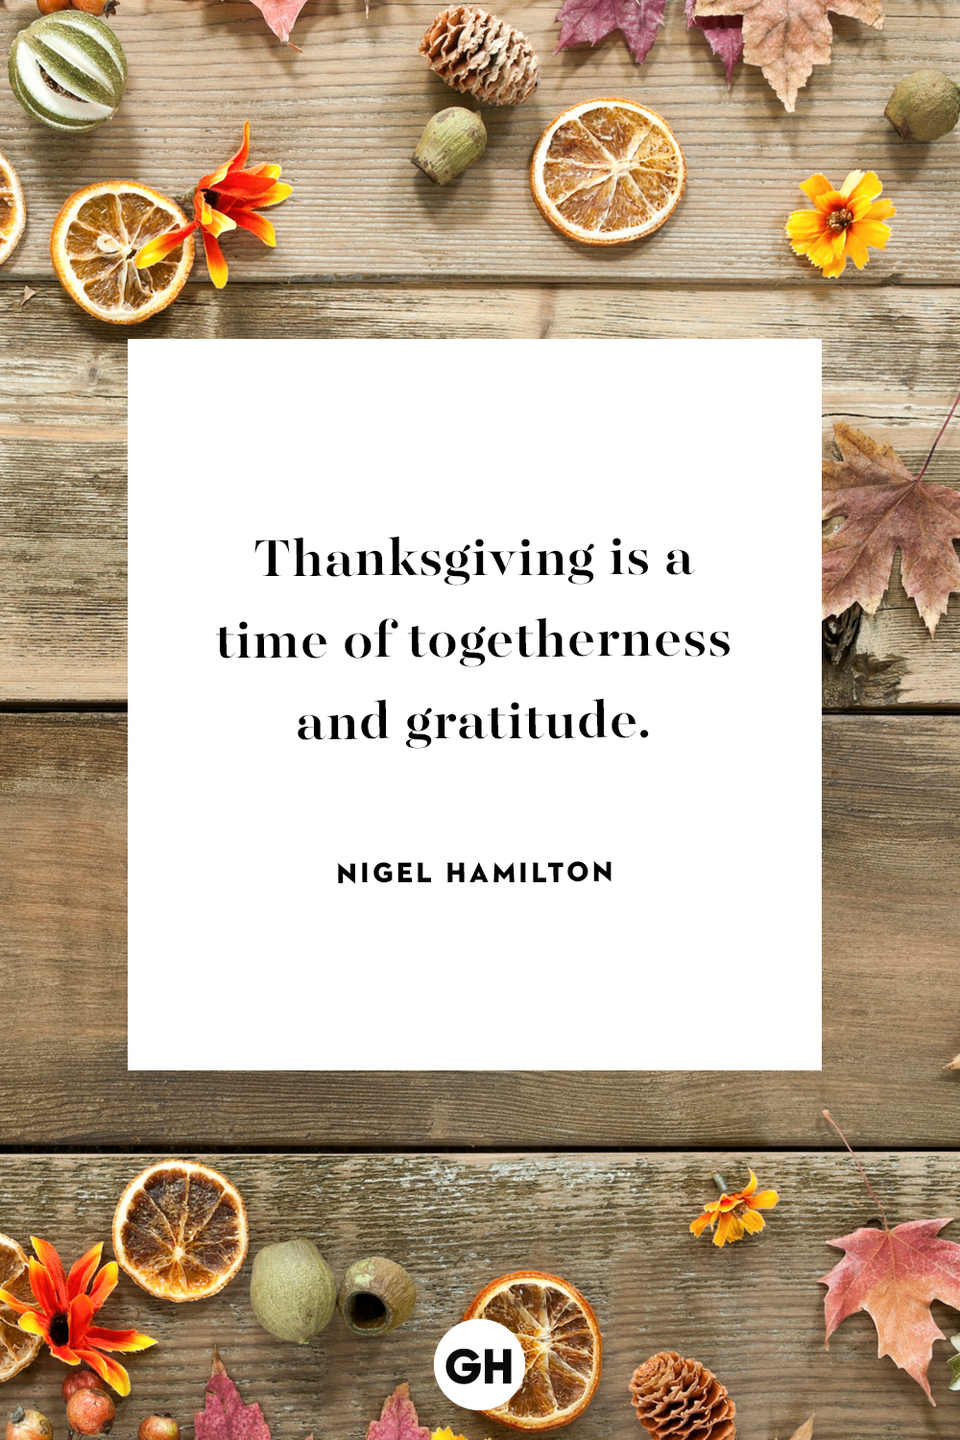 <p>Thanksgiving is a time of togetherness and gratitude.</p>